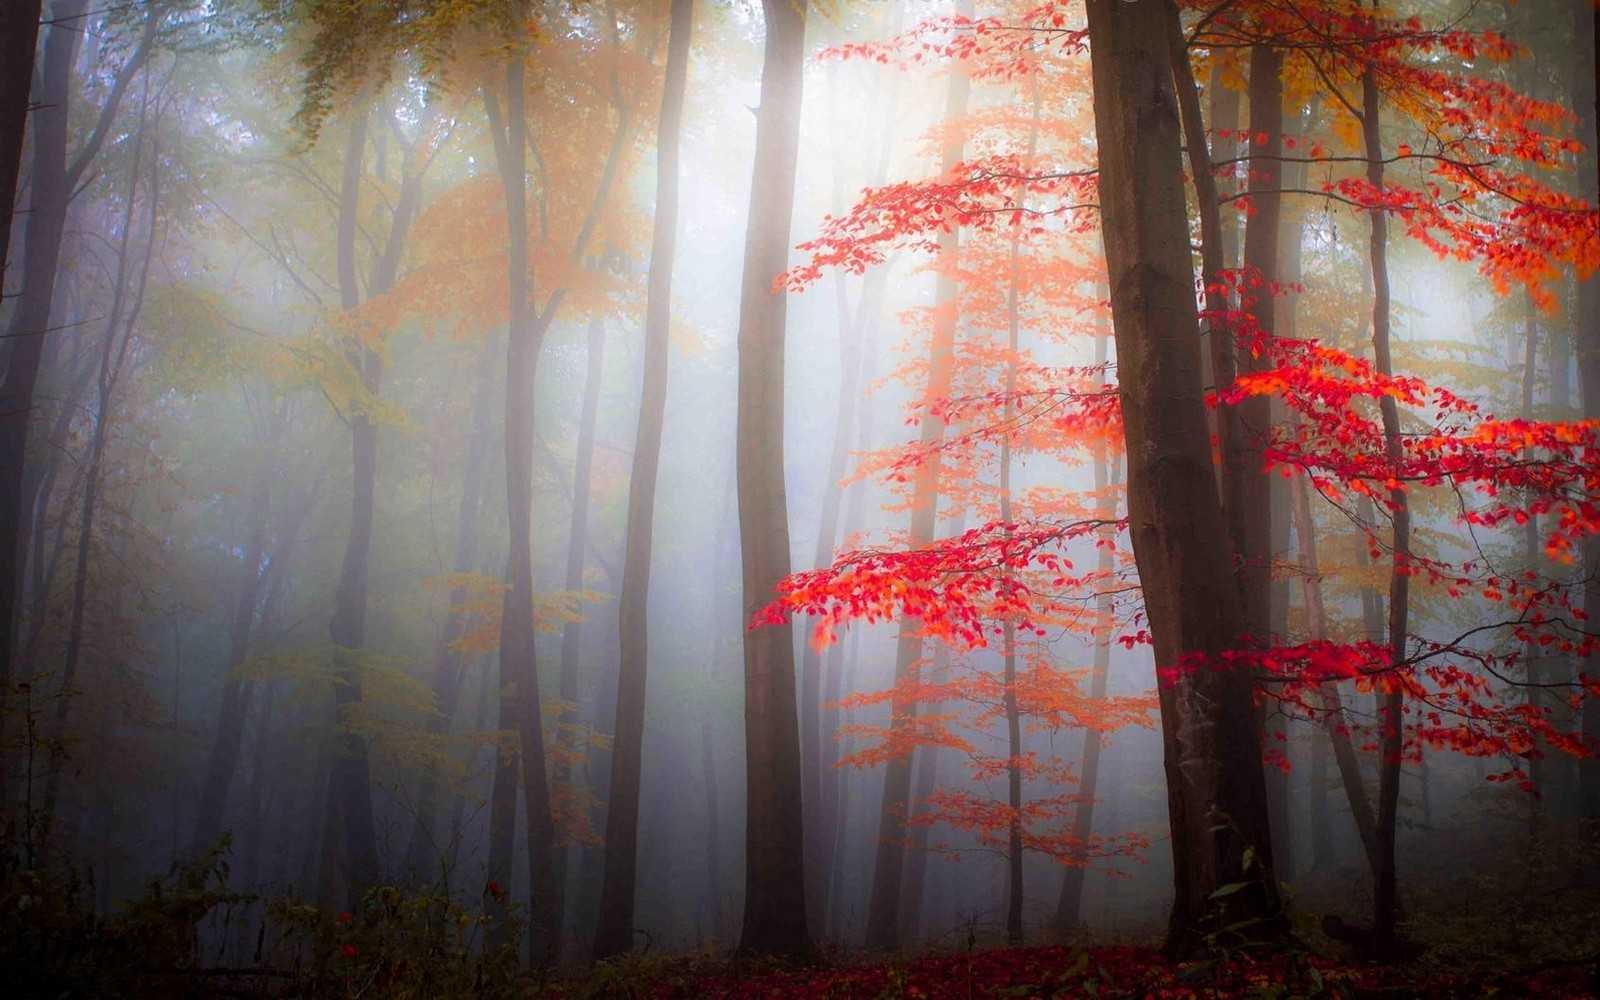 Forest Animal Wallpaper Nature Landscape Mist Forest Fall Leaves Trees